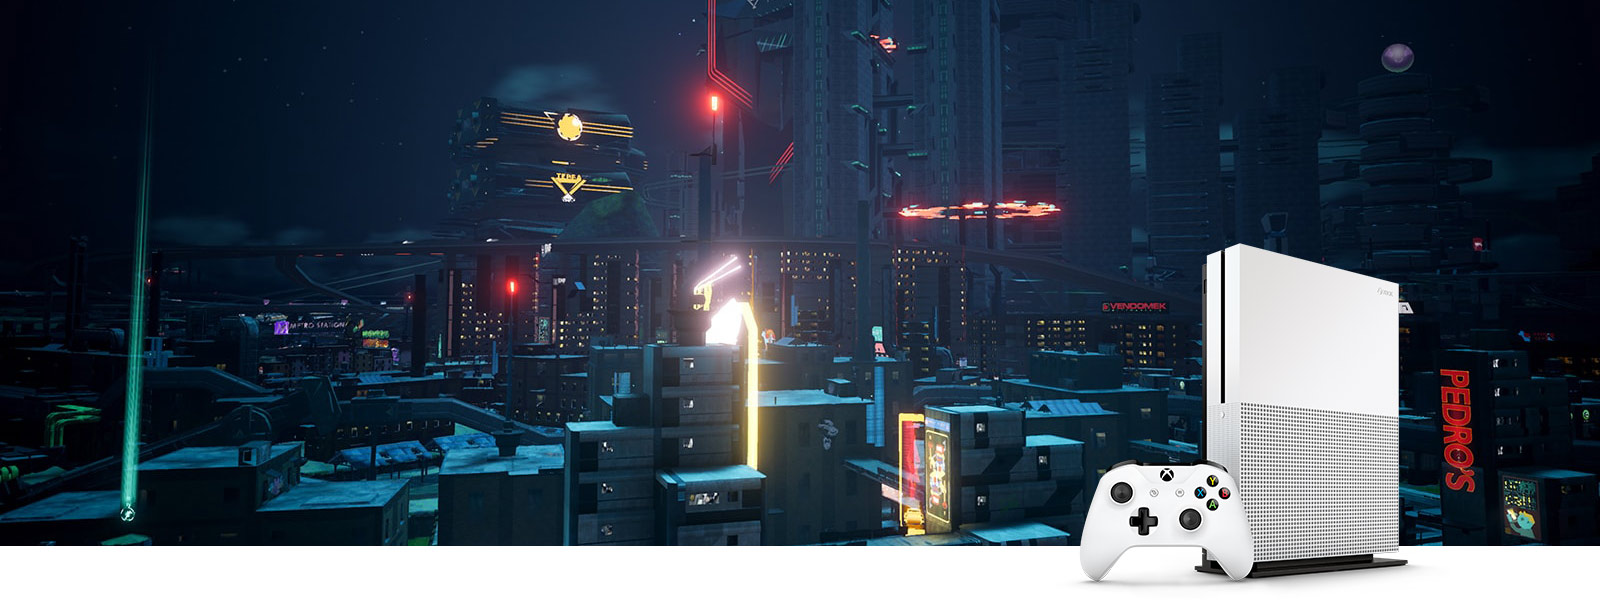 Crackdown 3 cityscape comparison screenshot with high dynamic range off